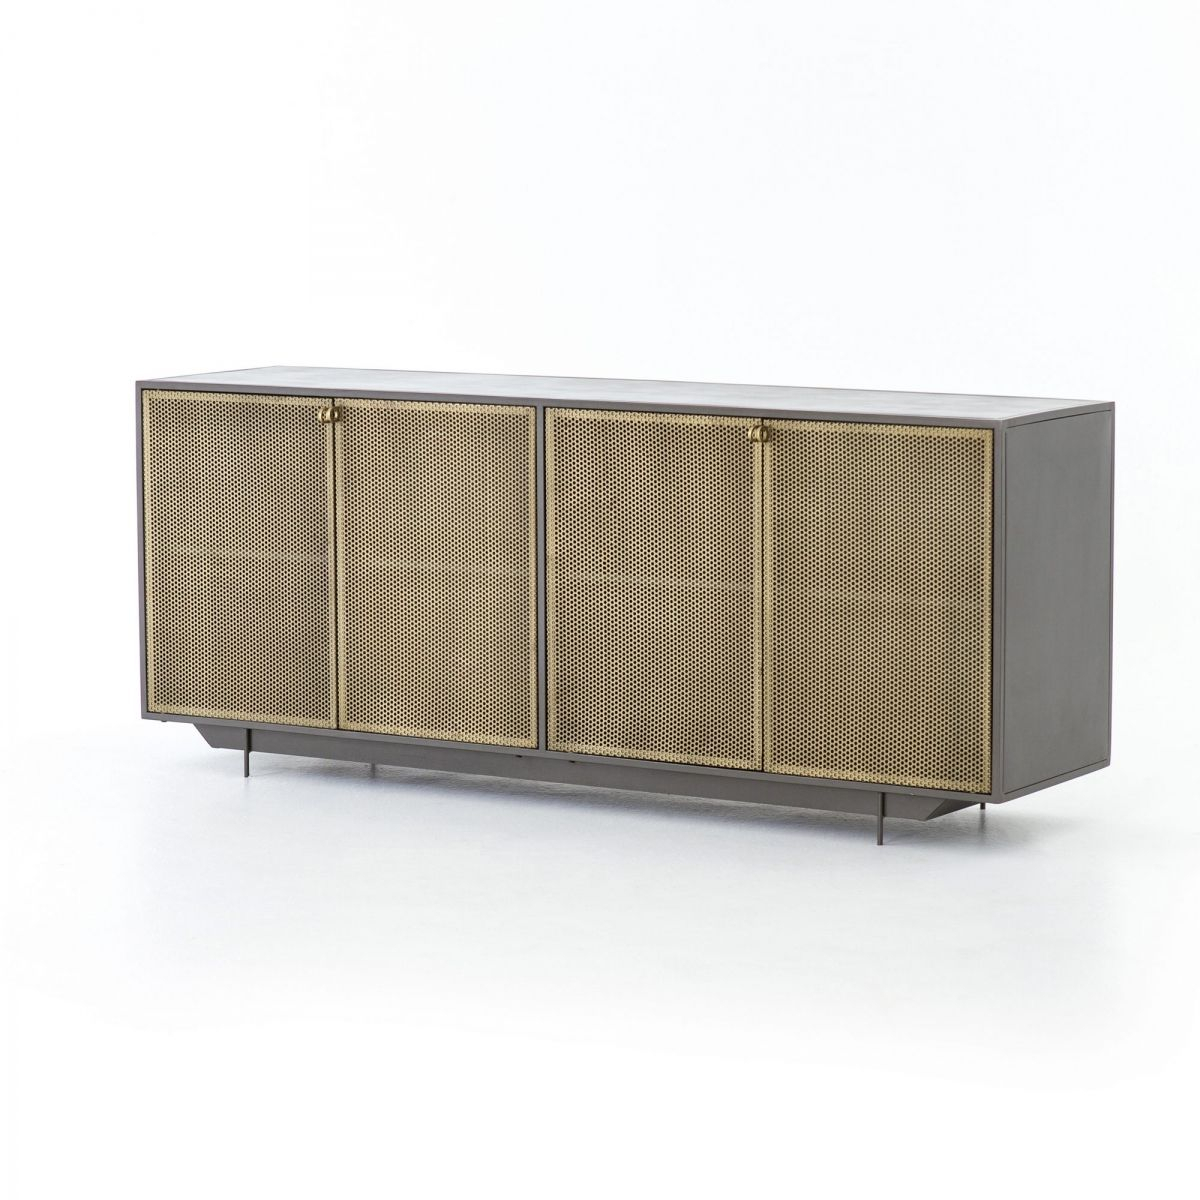 Hendrick Sideboard | Furniture And Accessories In 2019 Within Contemporary Wooden Buffets With Four Open Compartments And Metal Tapered Legs (View 15 of 30)